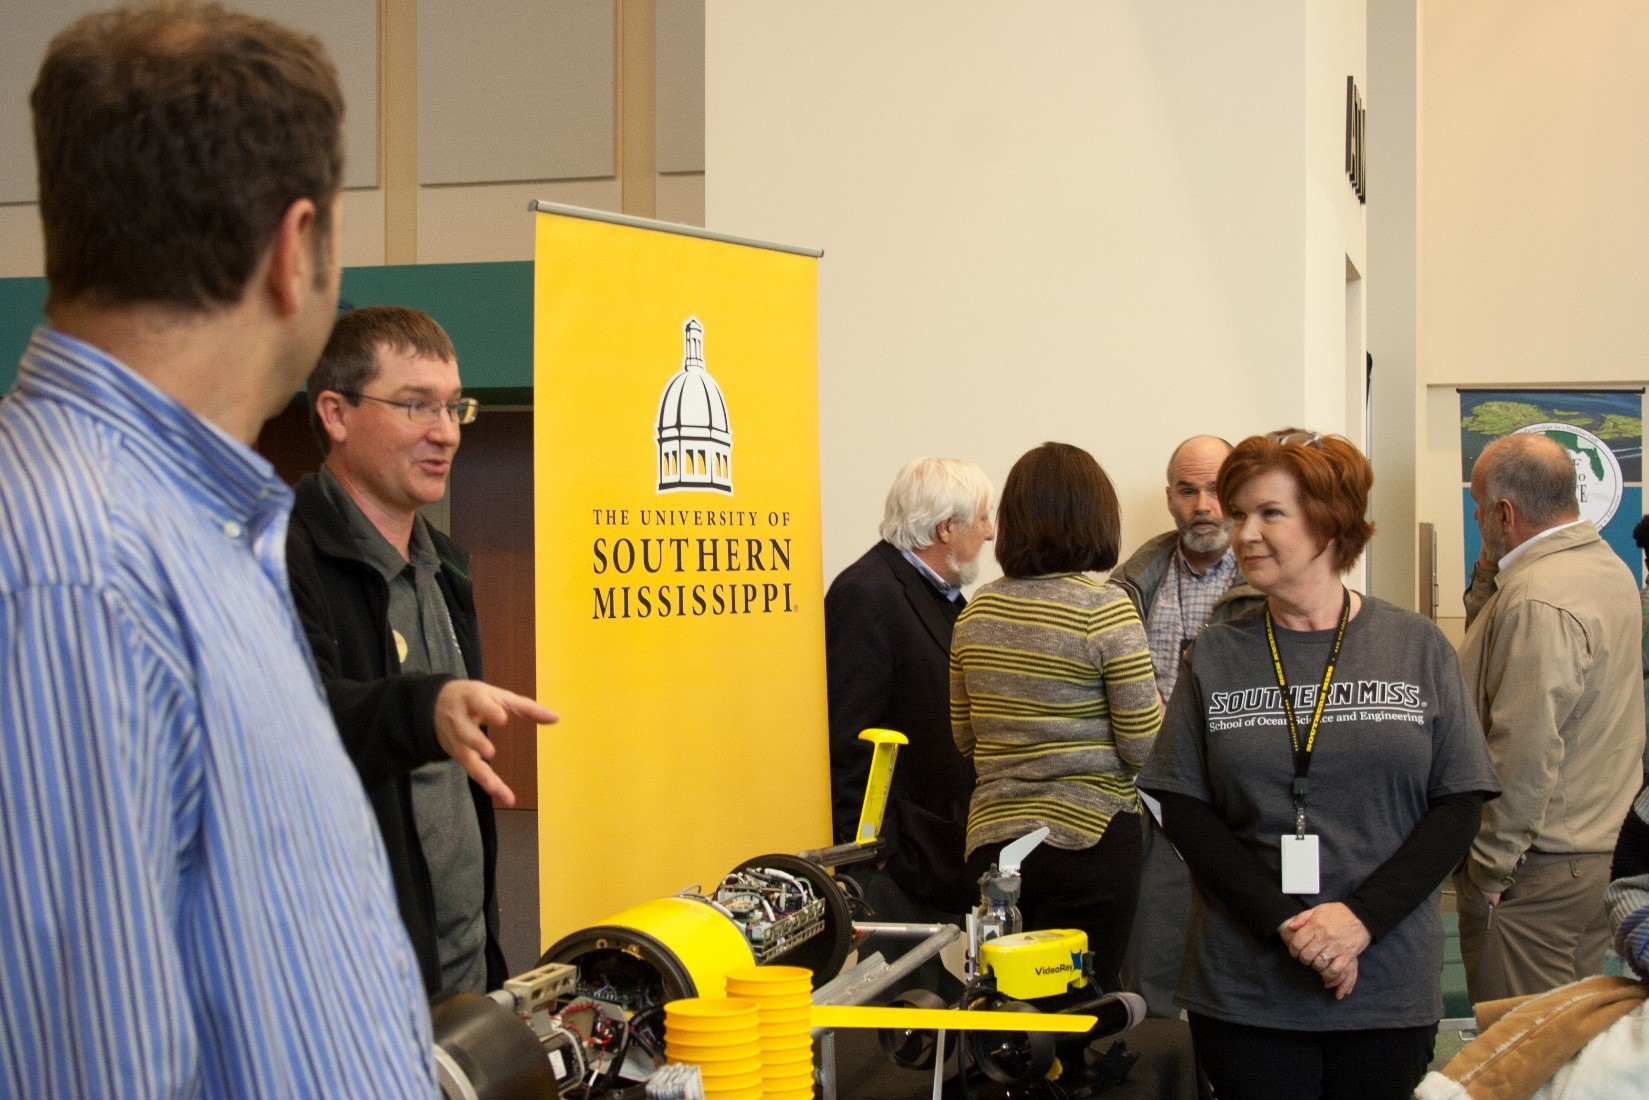 People gather around an exhibitor's booth, with an underwater remotely operated vehicle displayed on a table.